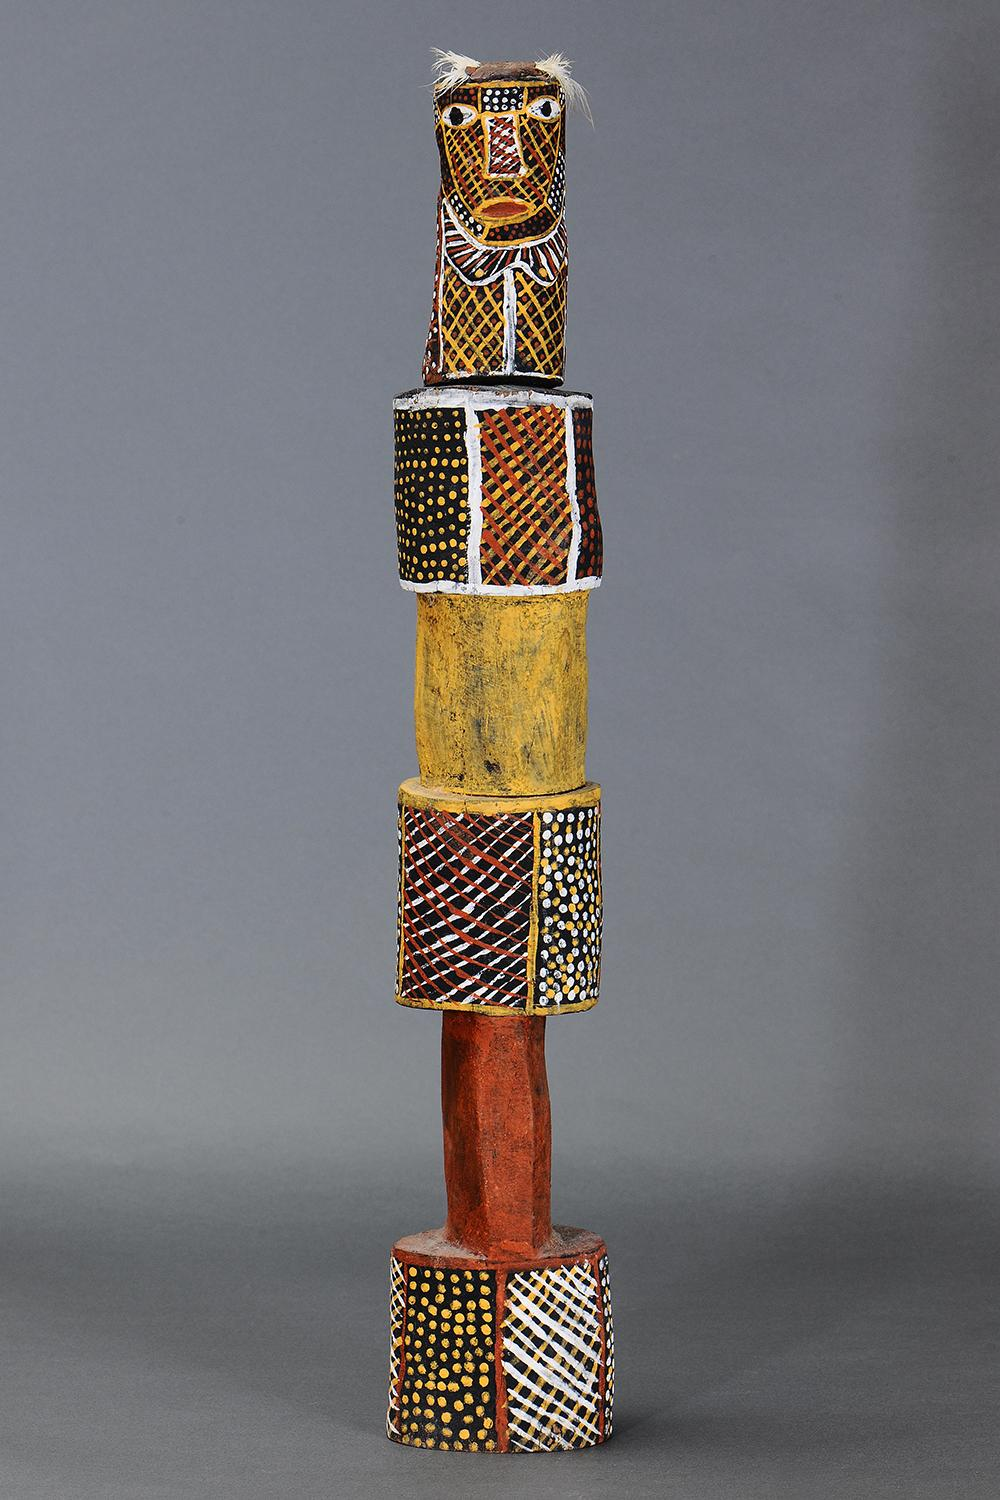 TIWI POLE, TIWI GROUP, MELVILLE AND BATHURST ISLANDS, NORTHERN TERRITORY